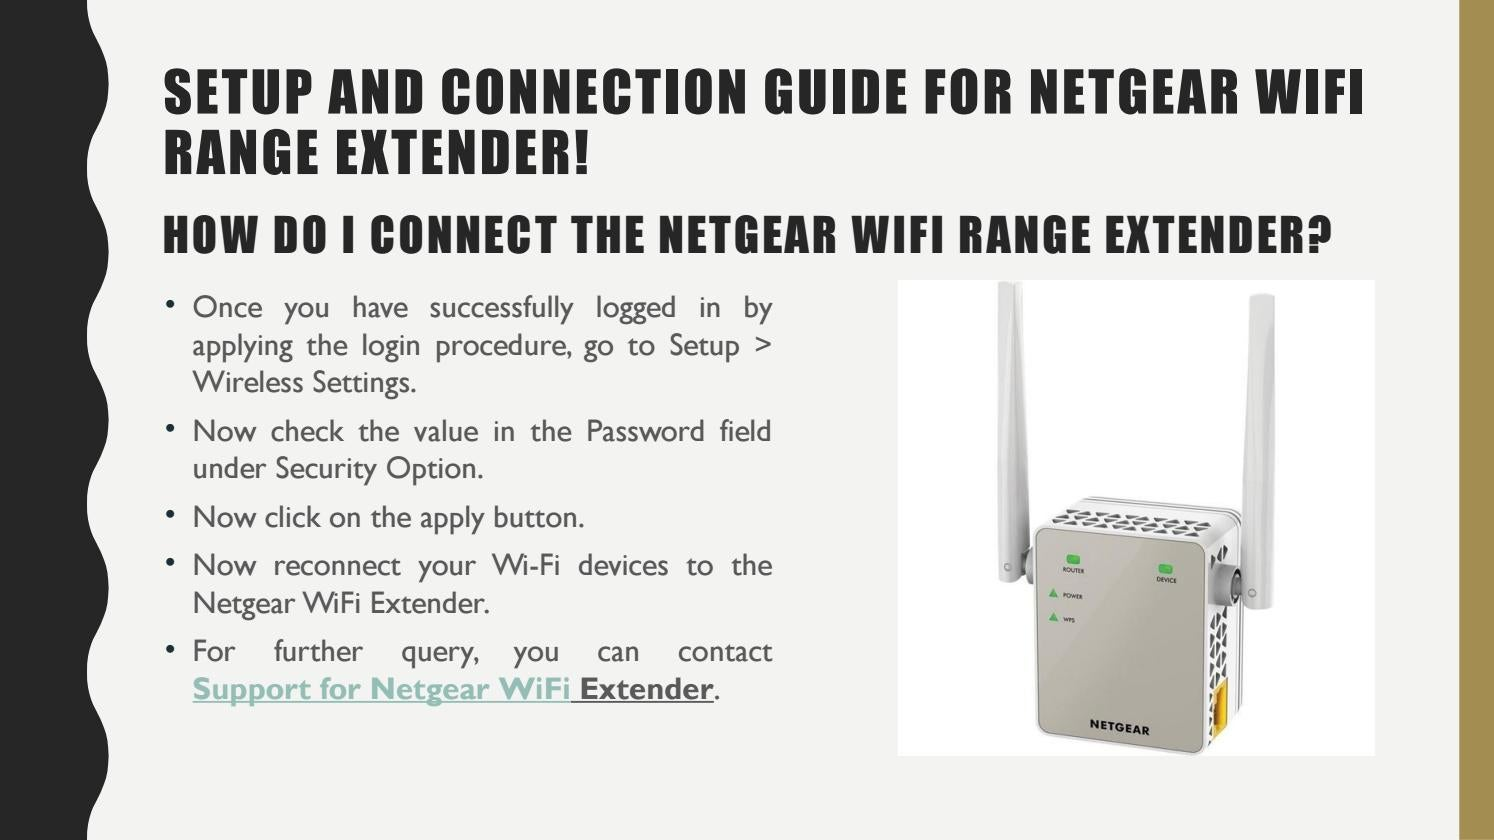 Setup And Connection Guide For Netgear WiFi Range Extender! by